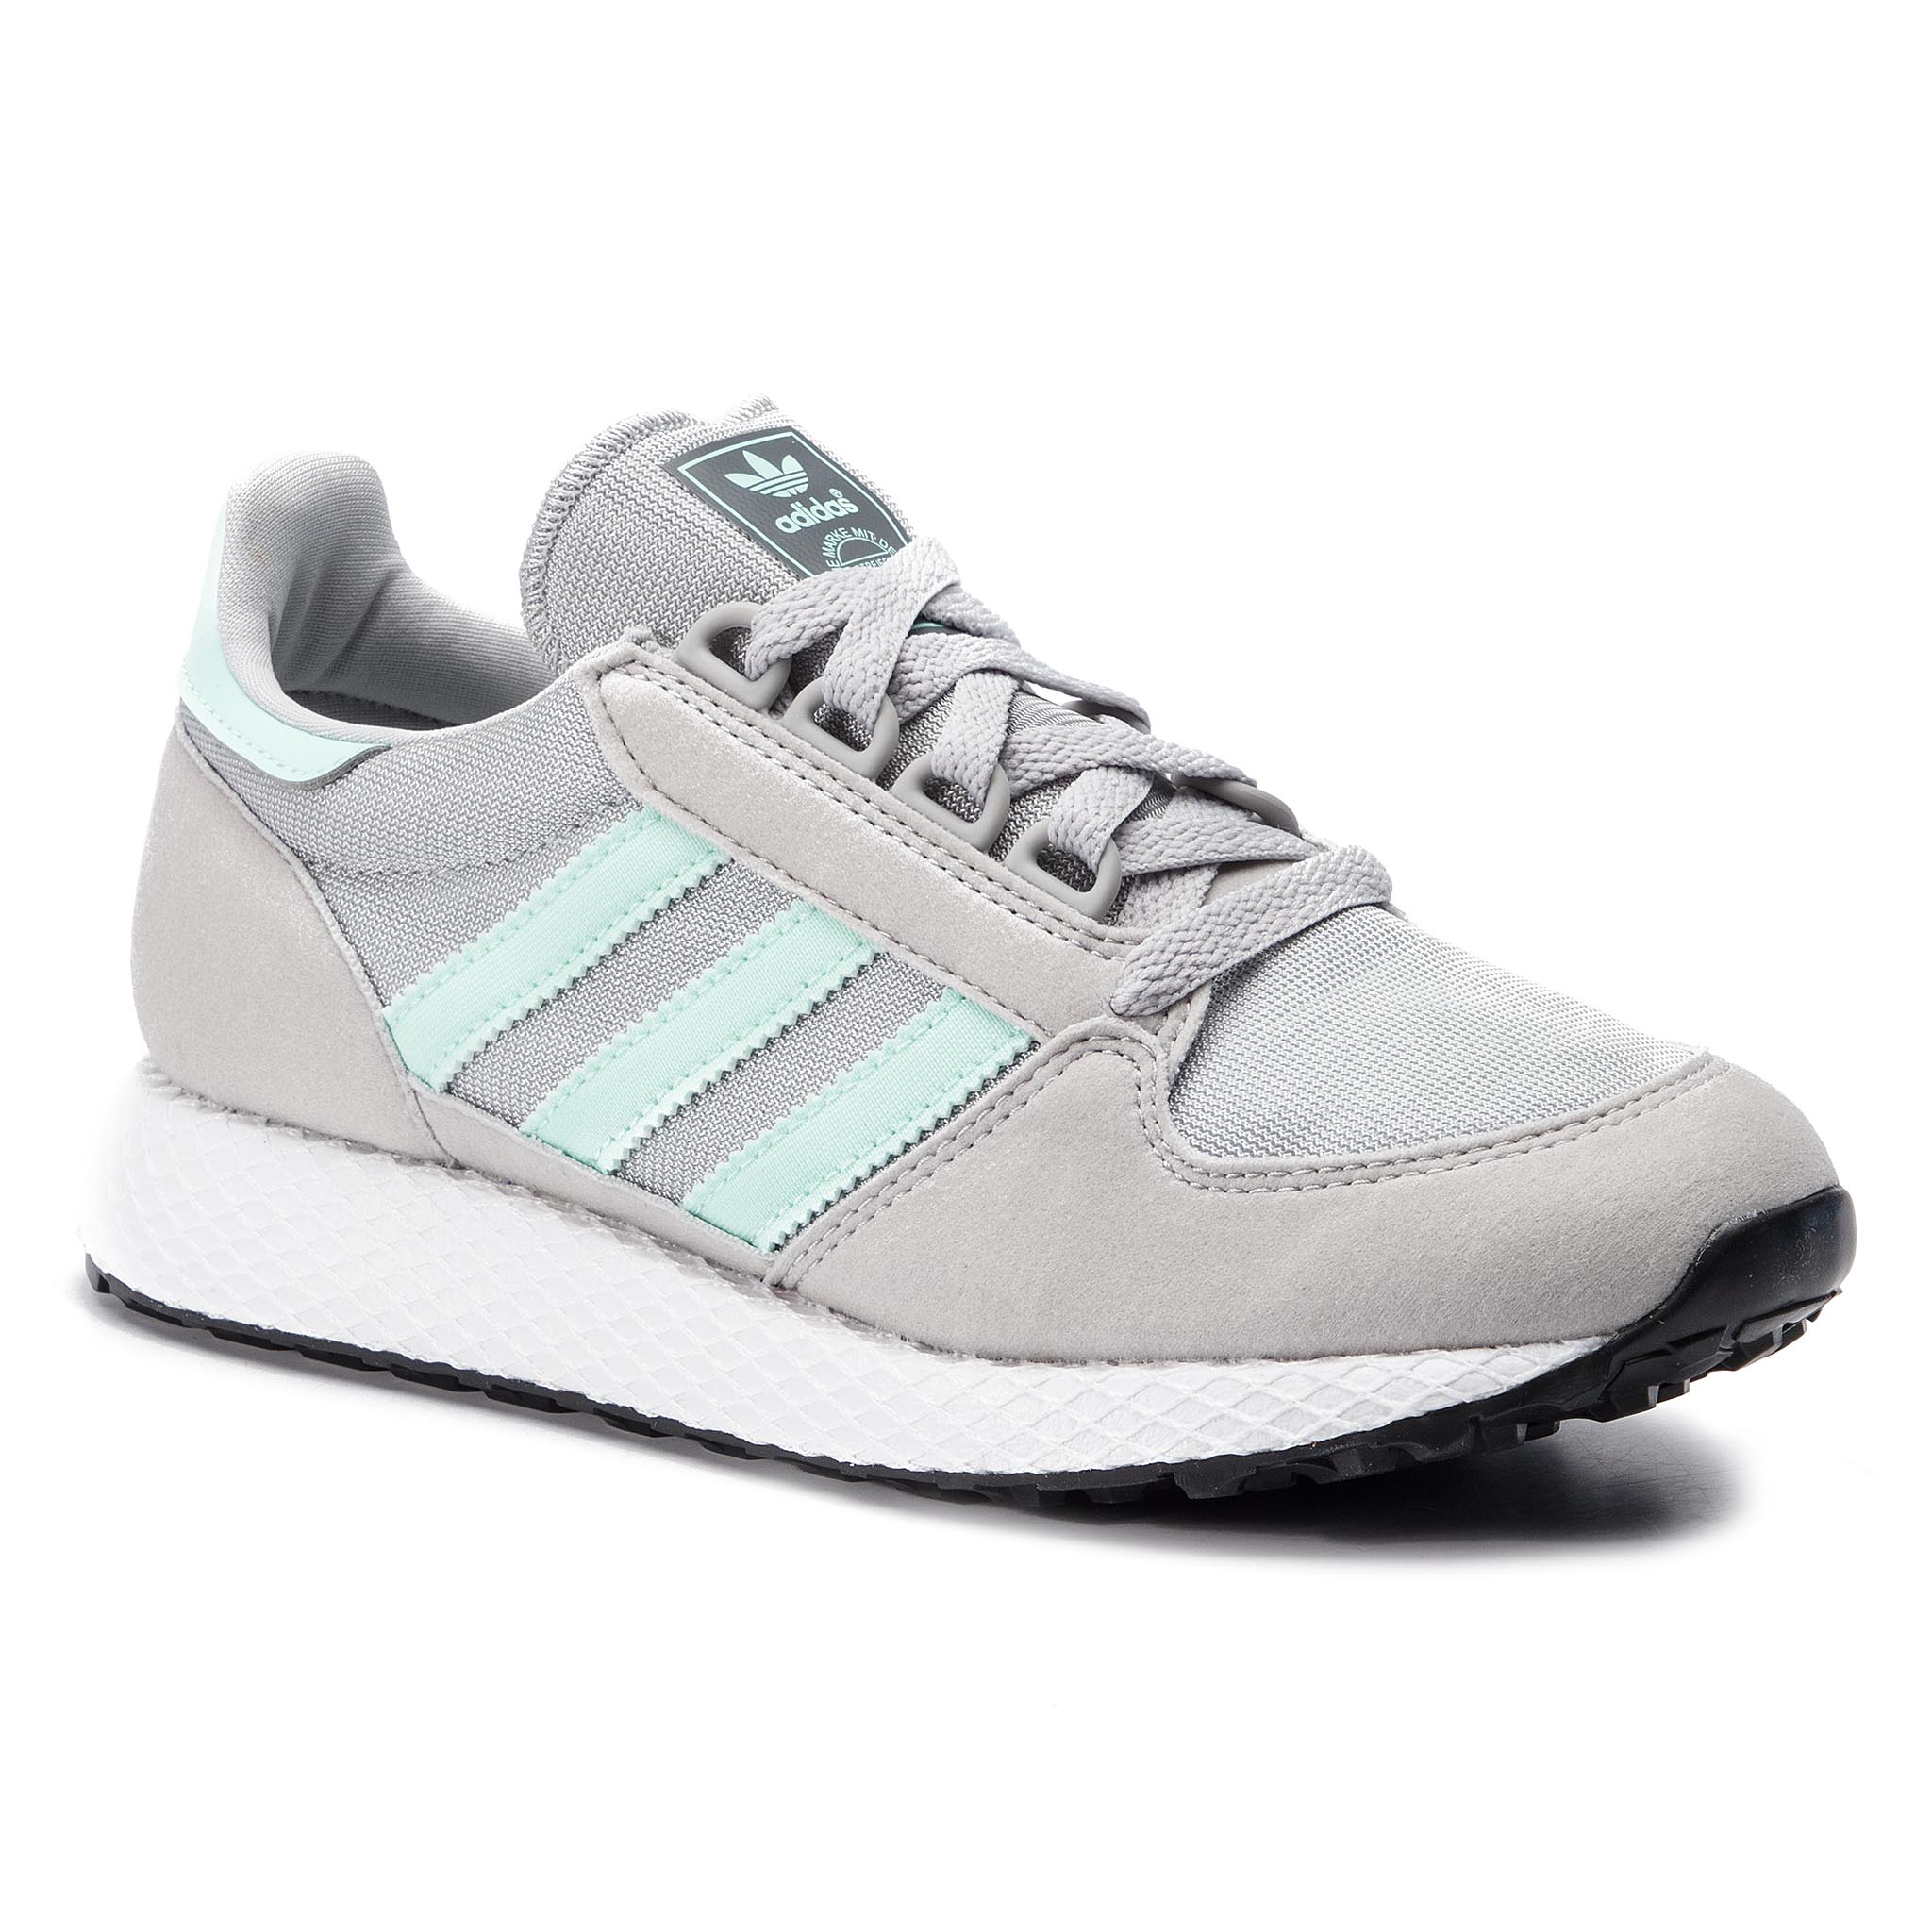 Buty adidas – Forest Grove J CG6799 Gretwo/Clemin/Grefou